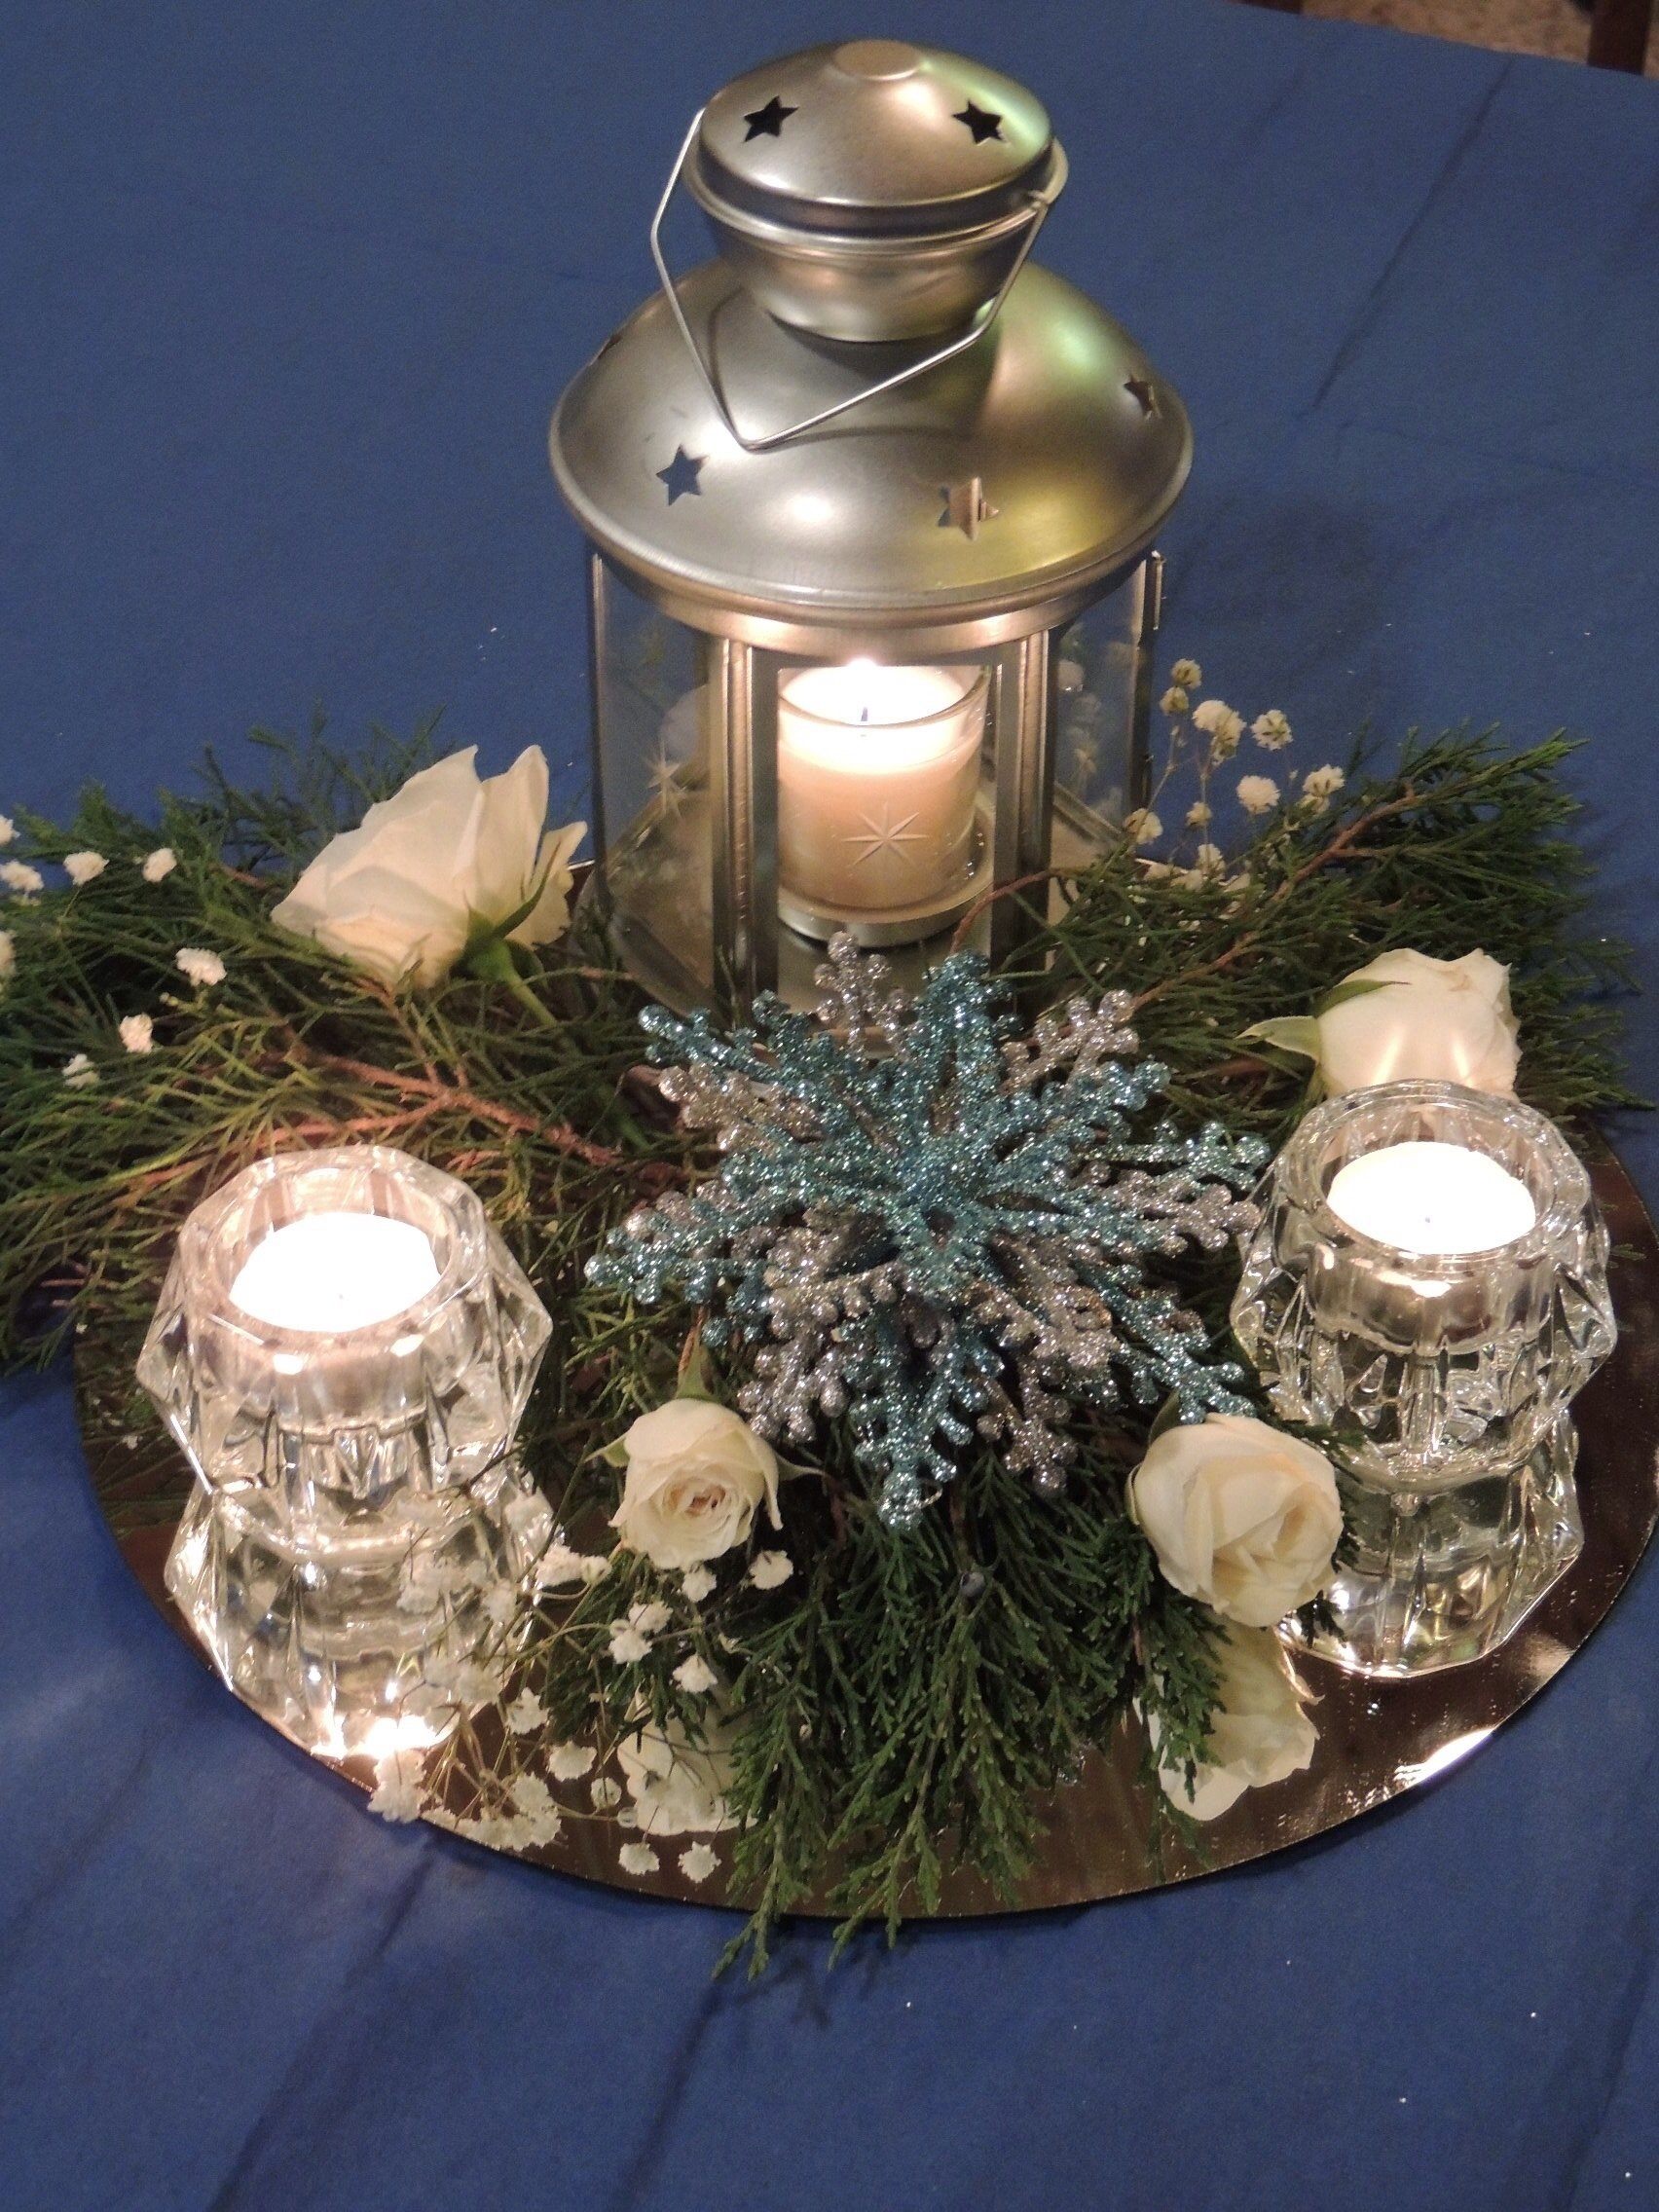 10 Wonderful 25 Wedding Anniversary Party Ideas centerpieces from our 25th anniversary party also perfect for a 1 2020